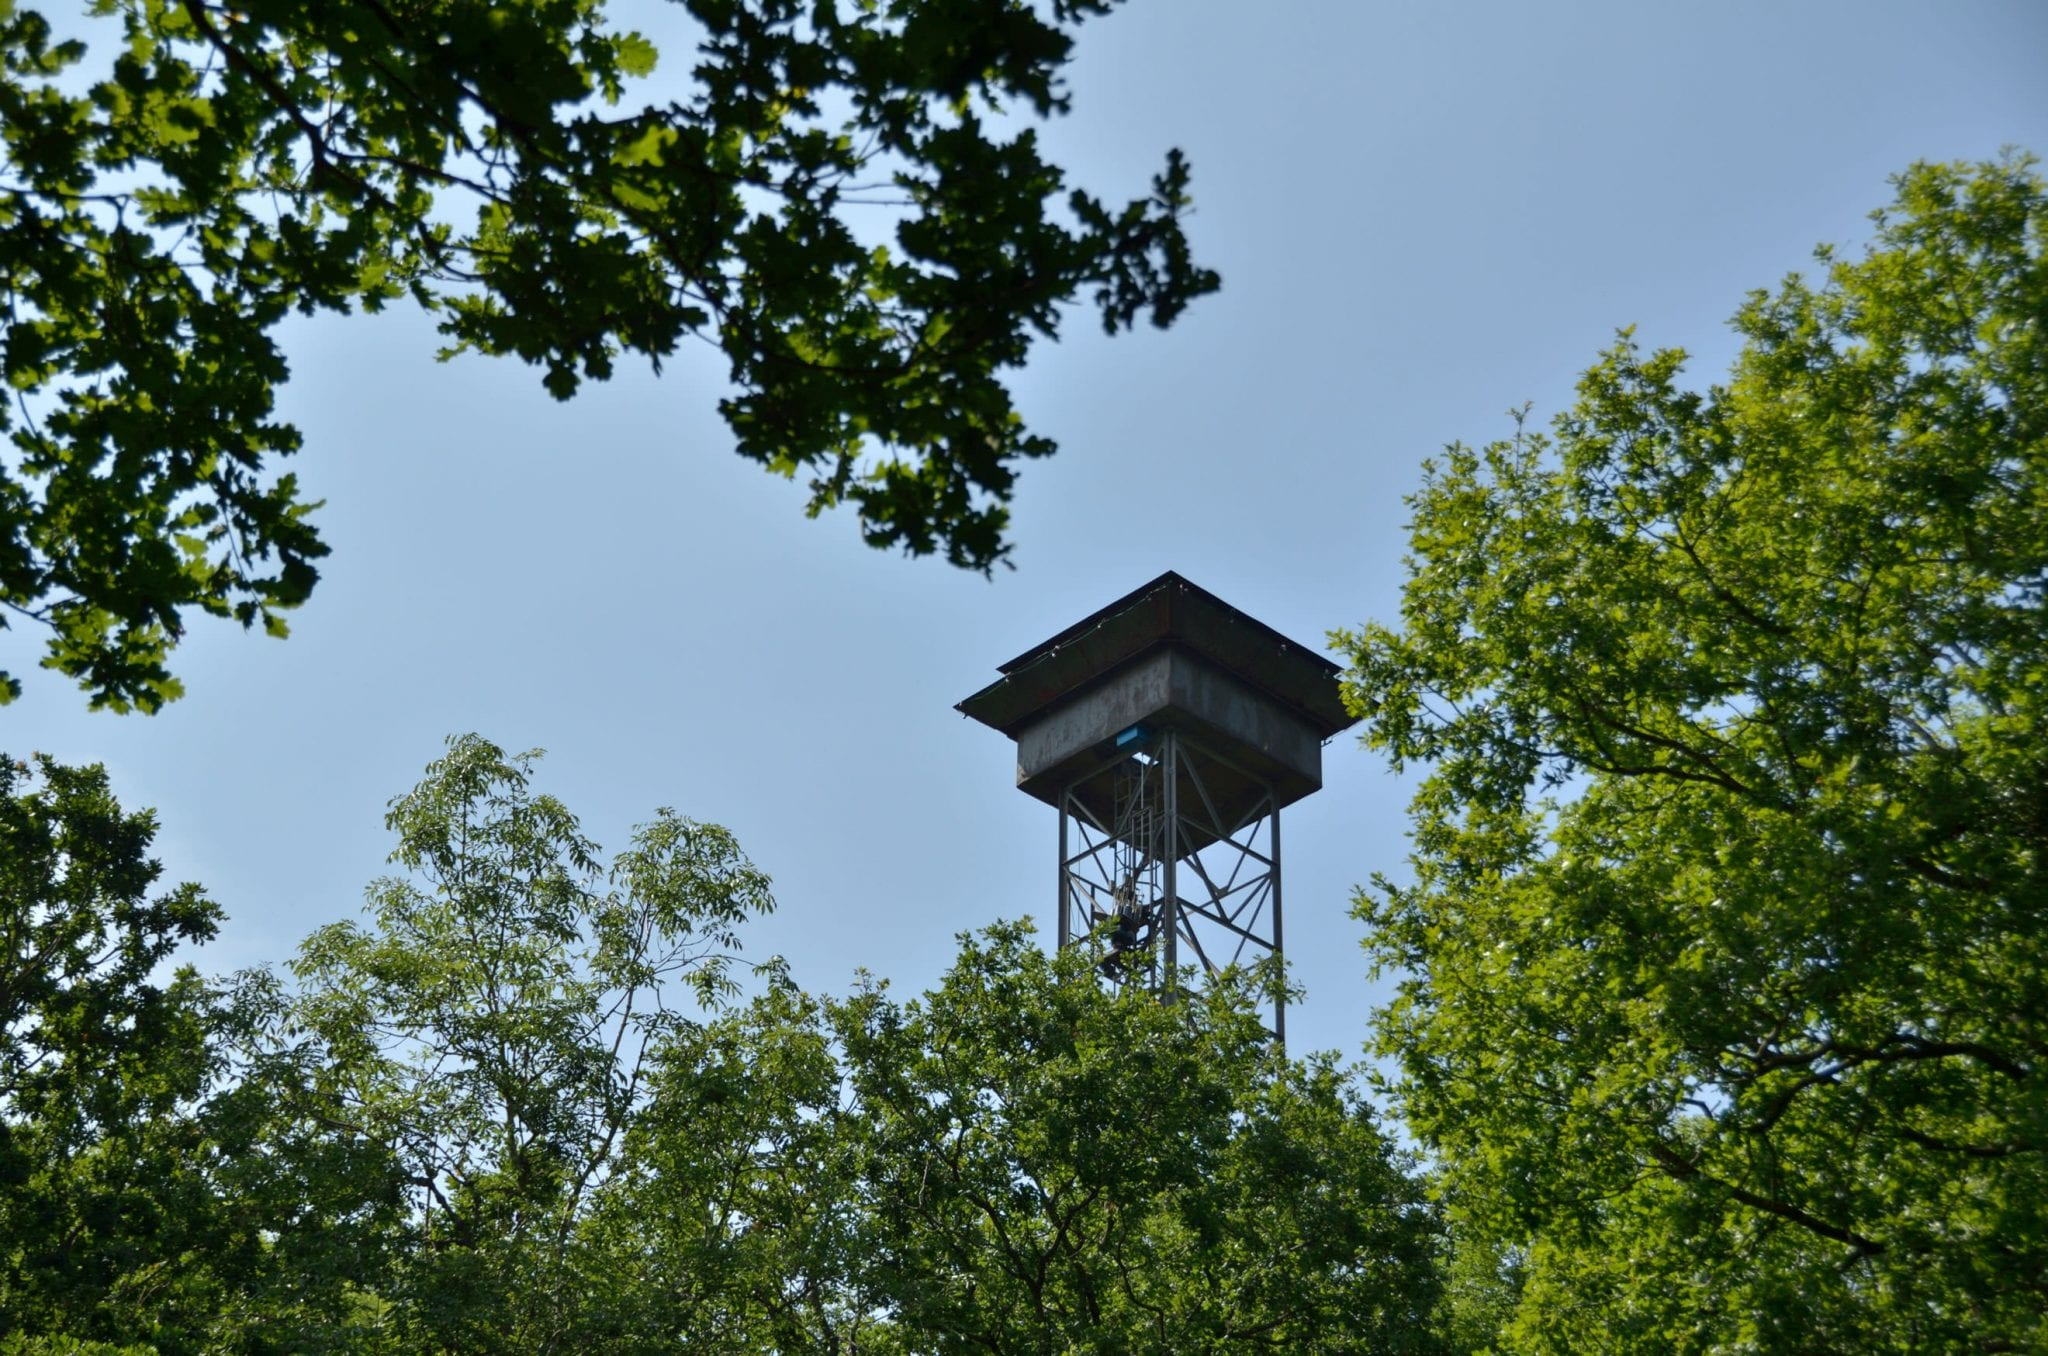 Clay Shooting Tariff - The shooting tower at Lady's Wood Shooting School